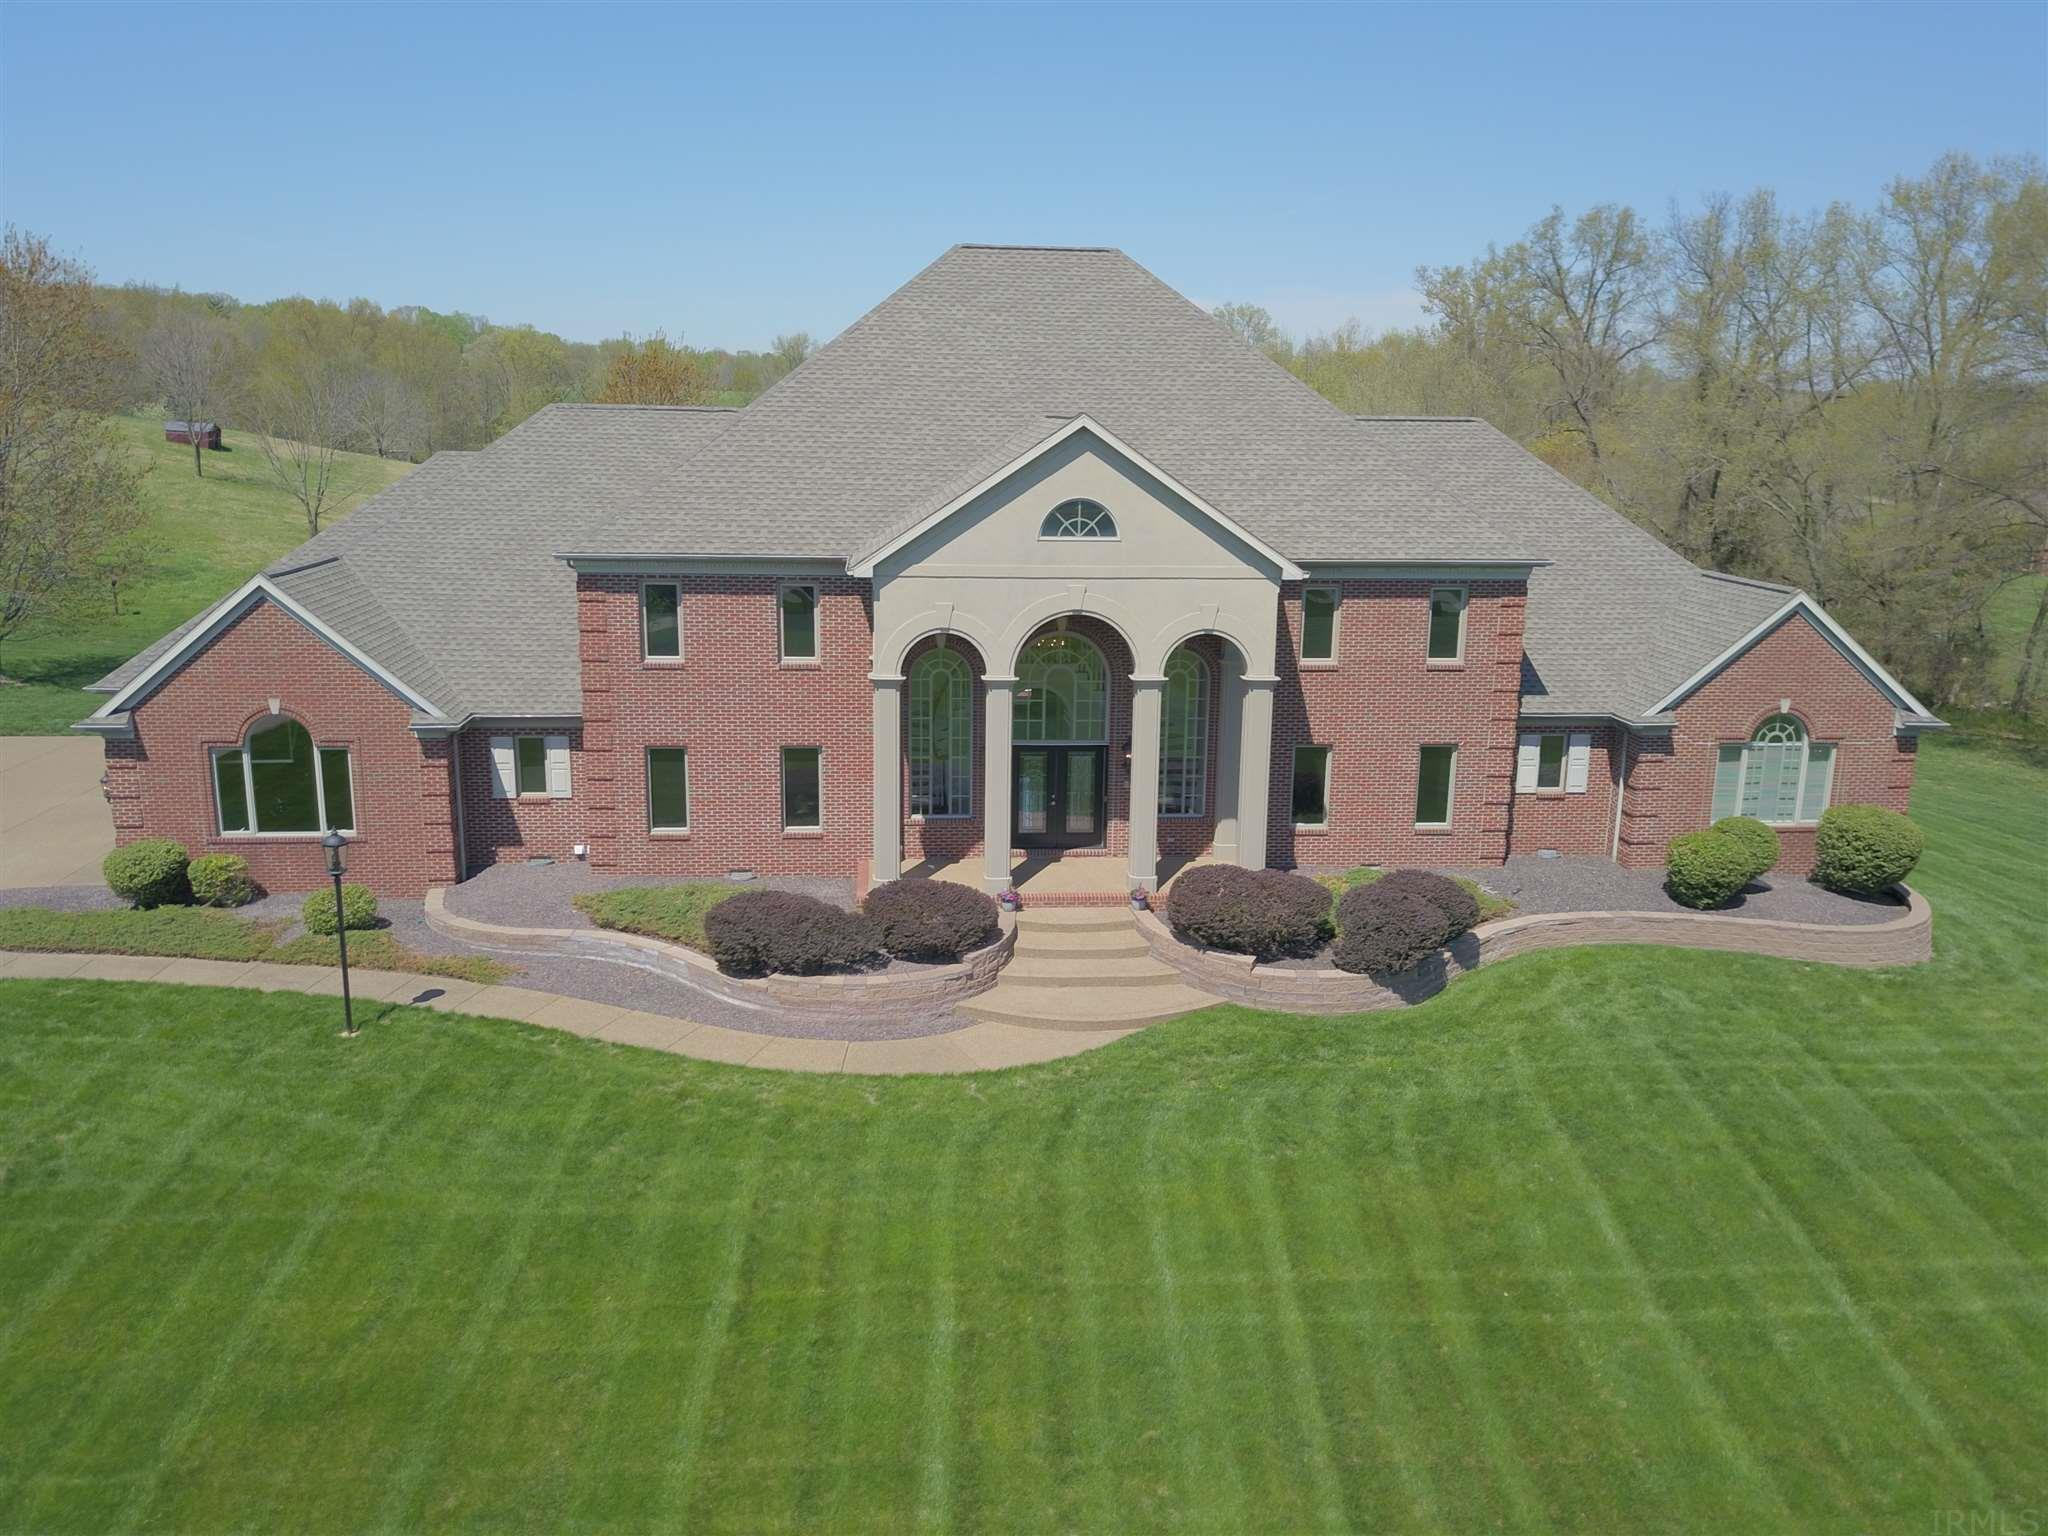 Now is your chance to own this Spectacular Estate! Located on a breathtaking 5.8 Acres in McCutchanville this One Owner has so much to offer. From the moment you arrive the long drive takes you past the beautifully manicured front lawn. The massive 2 story triple arched columned entry opens to the marble Foyer with grand curving twin staircase! Pass through an arched doorway to the Great room, also 2 story in height with coffered ceilings and beautiful wood stained built-ins flanking the Fireplace and another set of triple arched windows. The heart of the home is the Chef pleasing Kitchen with stainless appliances, SubZero refrigerator, granite tops, planning desk, over sized pantry, breakfast bar, center island and casual dining area with beautiful views of the back acreage, salt water pool and deck. Also on main level is a Formal dining room, Guest suite, Study and Owners Suite which includes the bedroom, sitting room, his and hers walk-in closets and a private bath!  Upstairs there are 2 sets of huge bedrooms each with a Jack and Jill bath separating. One features a bonus room all with loads of closet space! The walk out lower level boasts an inviting wet bar, rec area, Exercise room, full bath with changing room off of screened porch that leads out to the Pool. Other features include a 4 car garage, Security system, Irrigation system, Generator, One year home warranty, New roof 2018, new HVAC units 2015, all new floor covering and most entry doors, plumbing,  light fixtures and appliances recently replaced. Pool liner and pump '16, auto cover '17. Hurry, Immediate Possession!